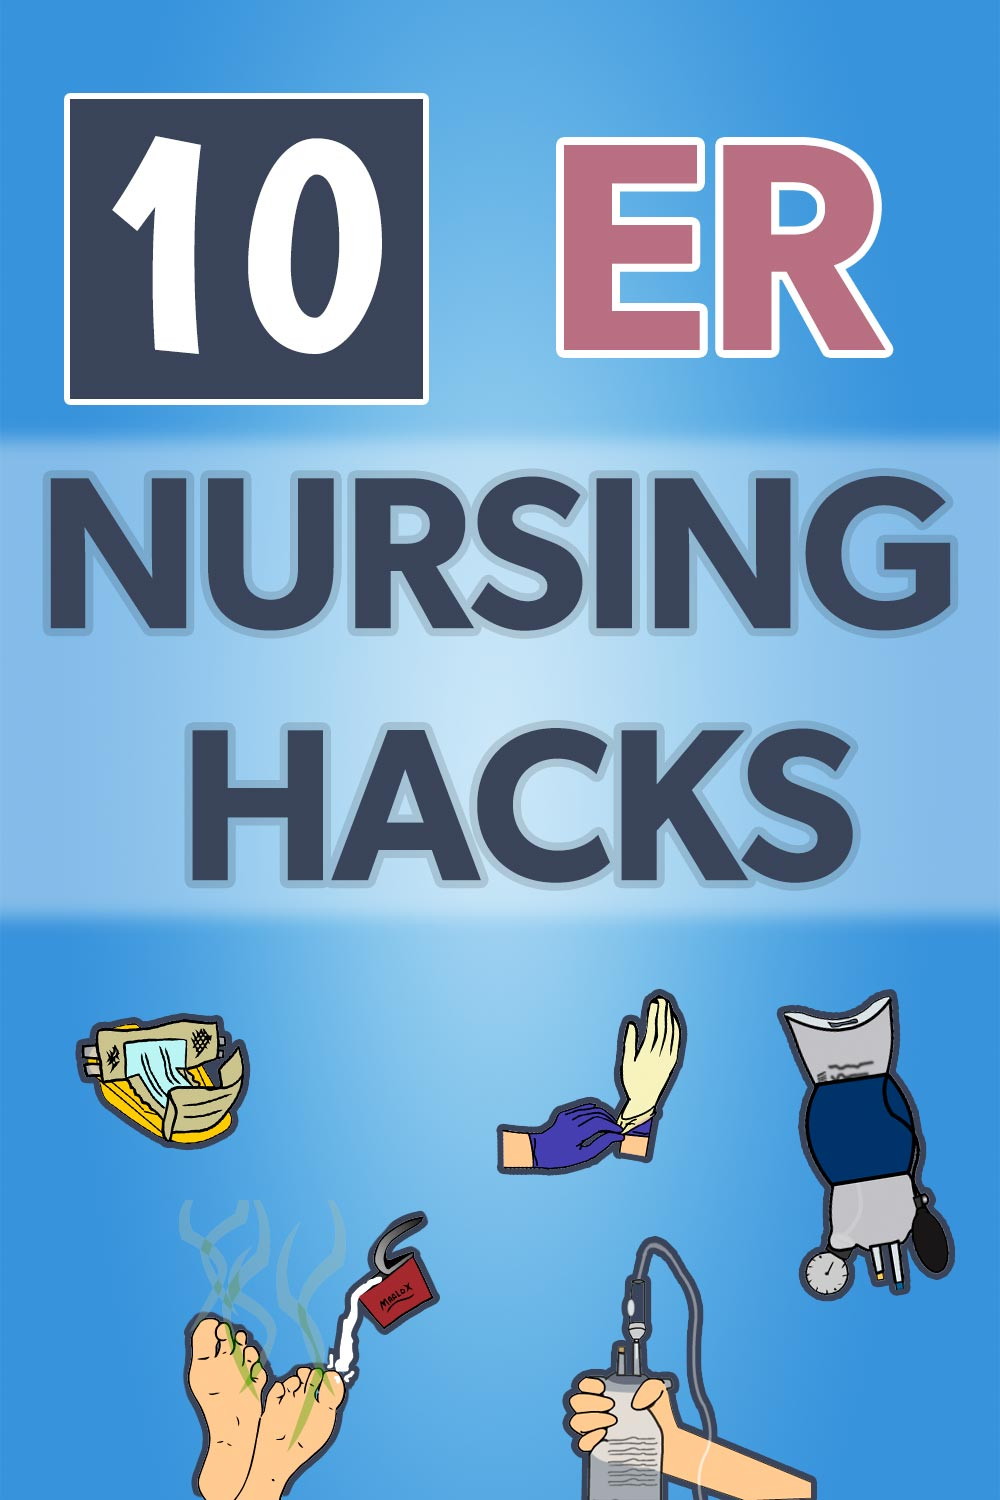 ER Nursing Hacks: Pin 2